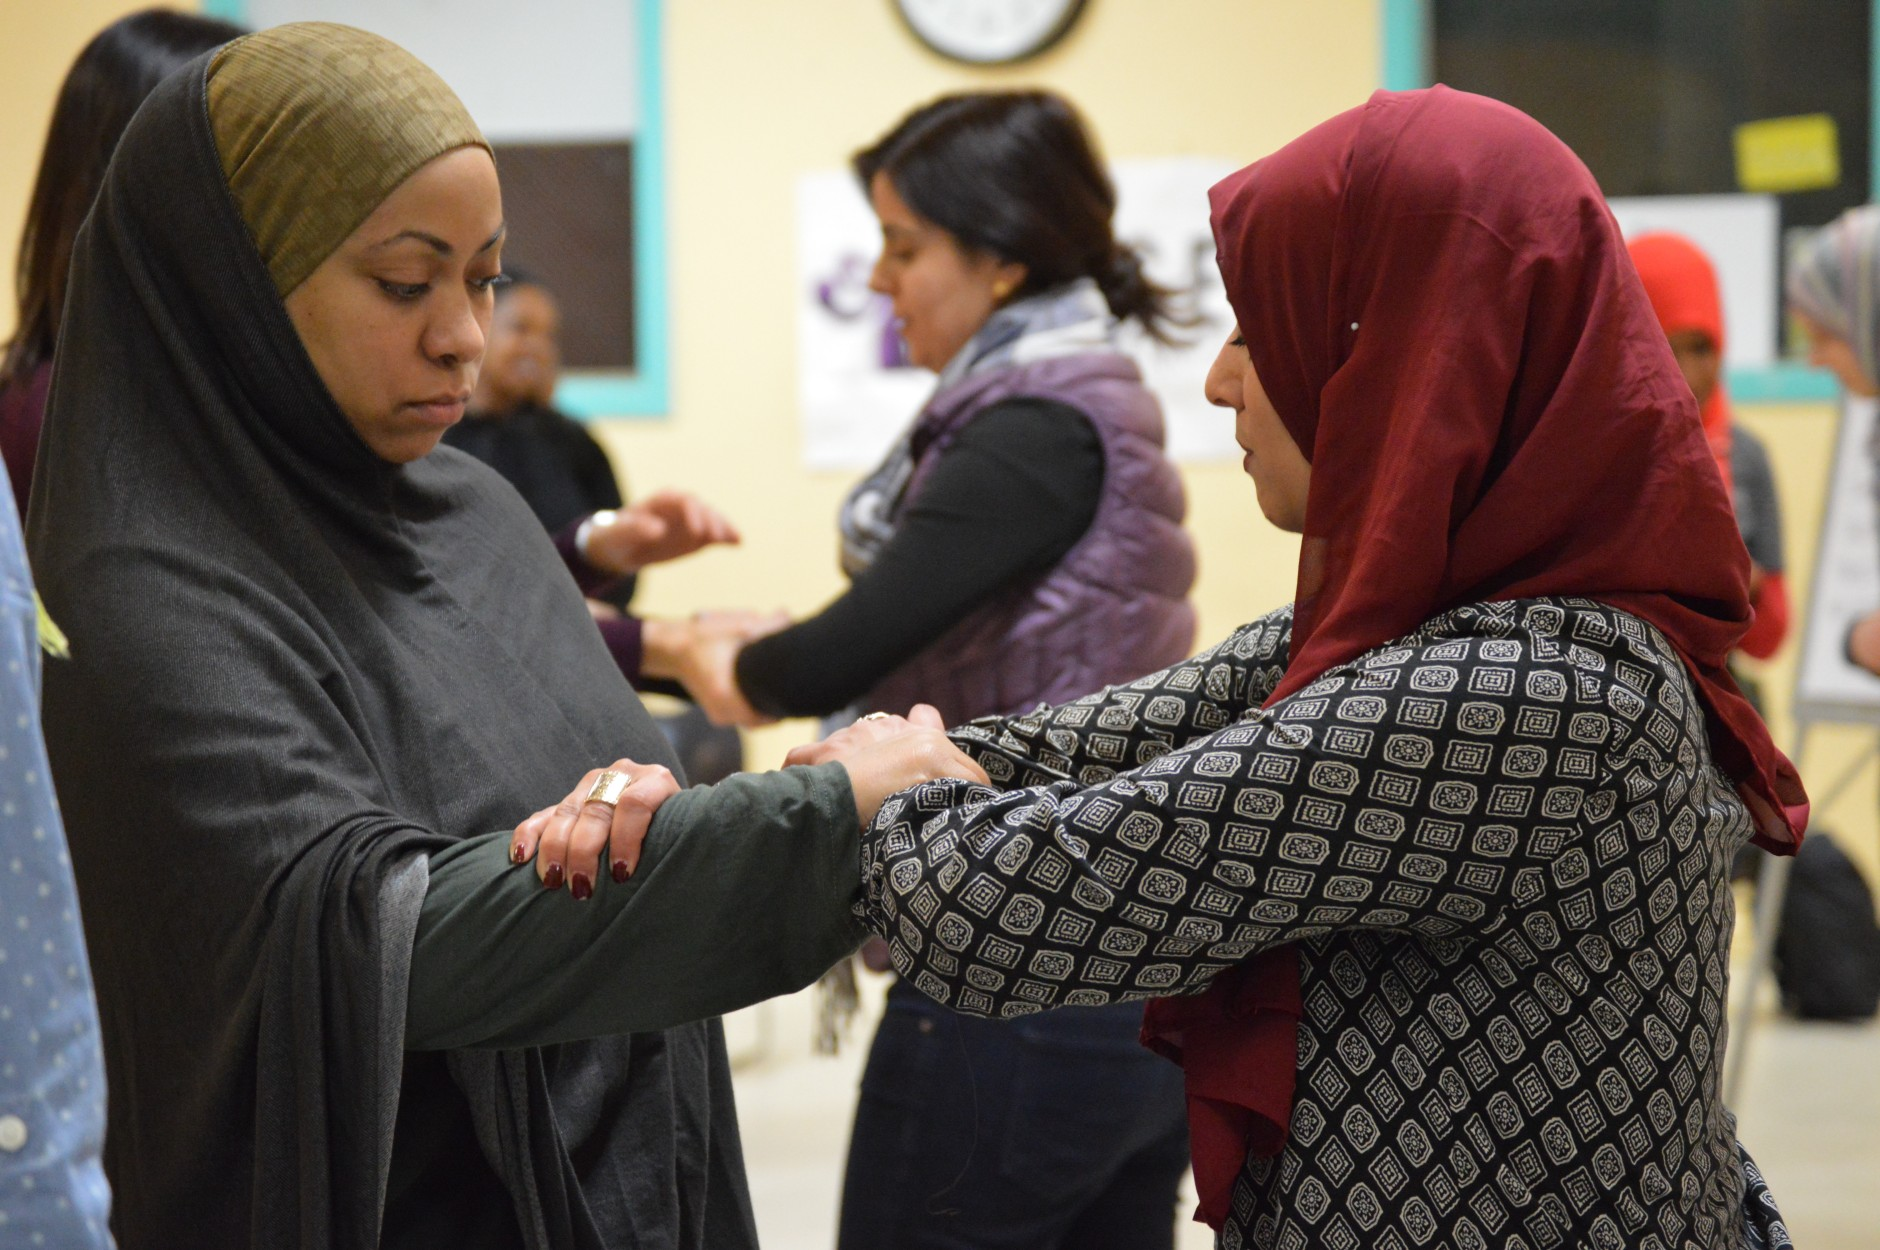 WISE's next three self-defense workshops will be held in Massachusetts, Texas and New York throughout January, according to Abdelhamid. (WTOP/Omama Altaleb)